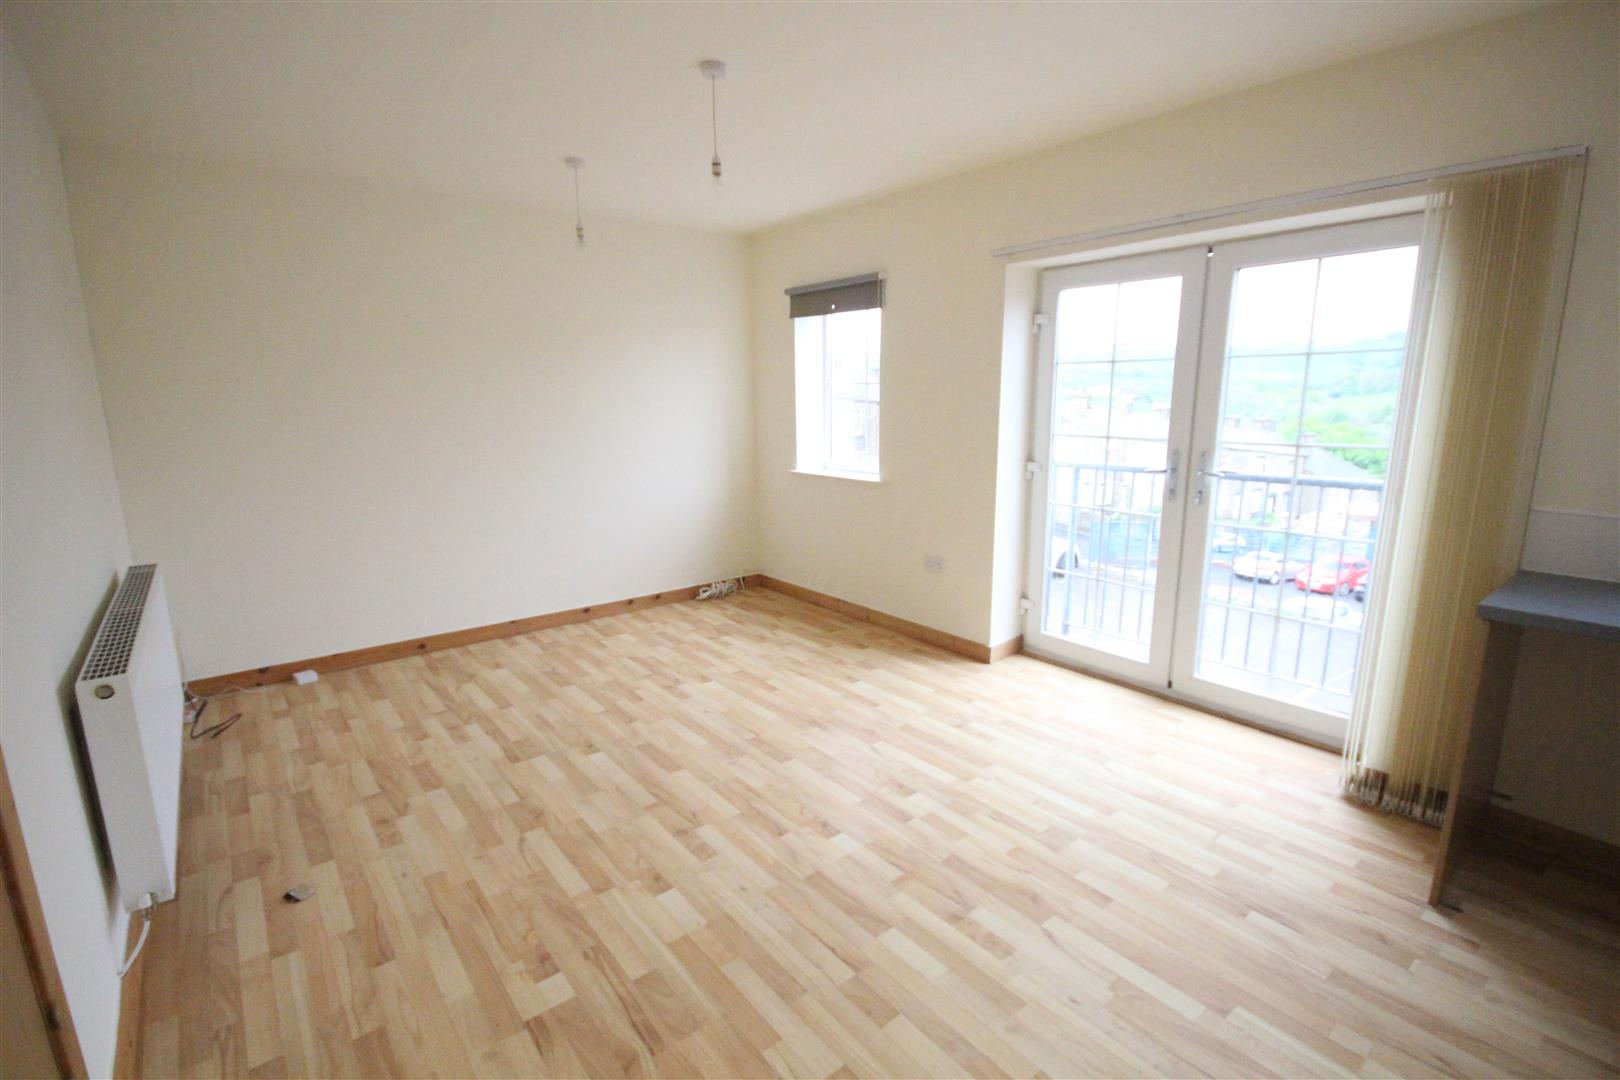 2 bedroom bungalow For Sale in Colne - IMG_0802.JPG